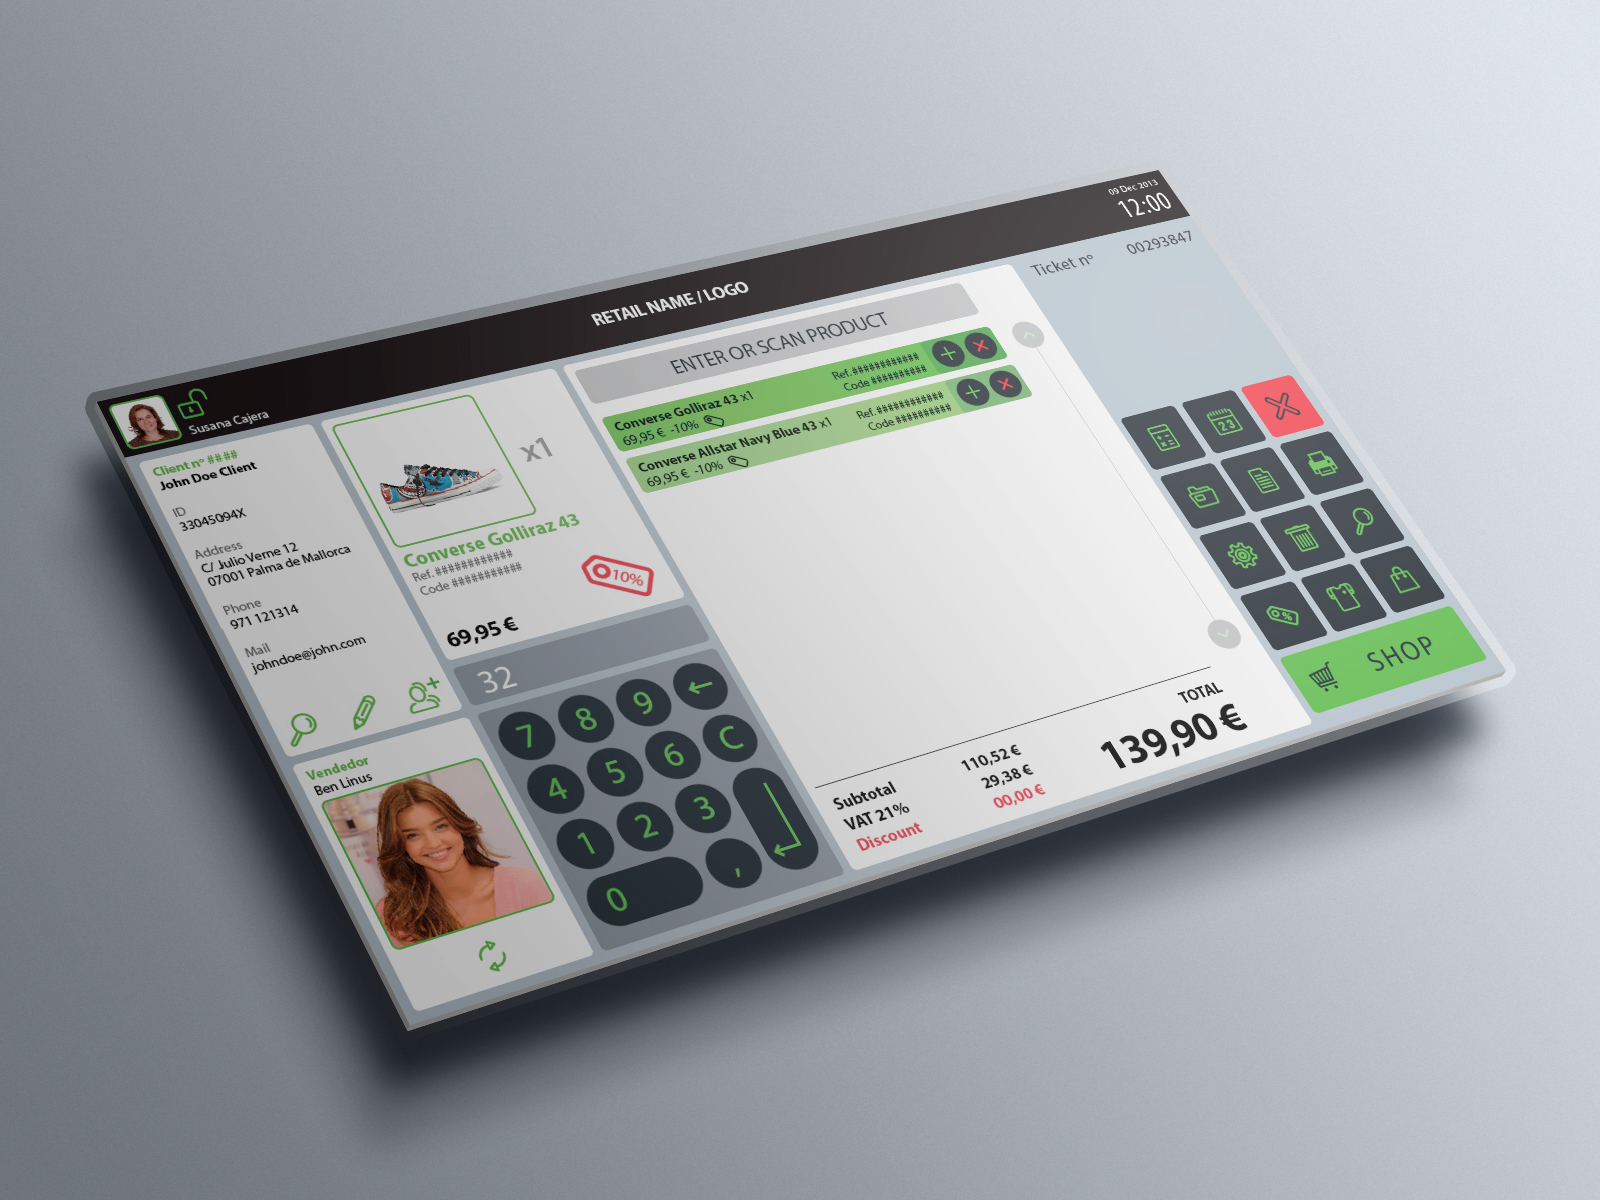 Retail Plus Point Of Sale Software - FREE